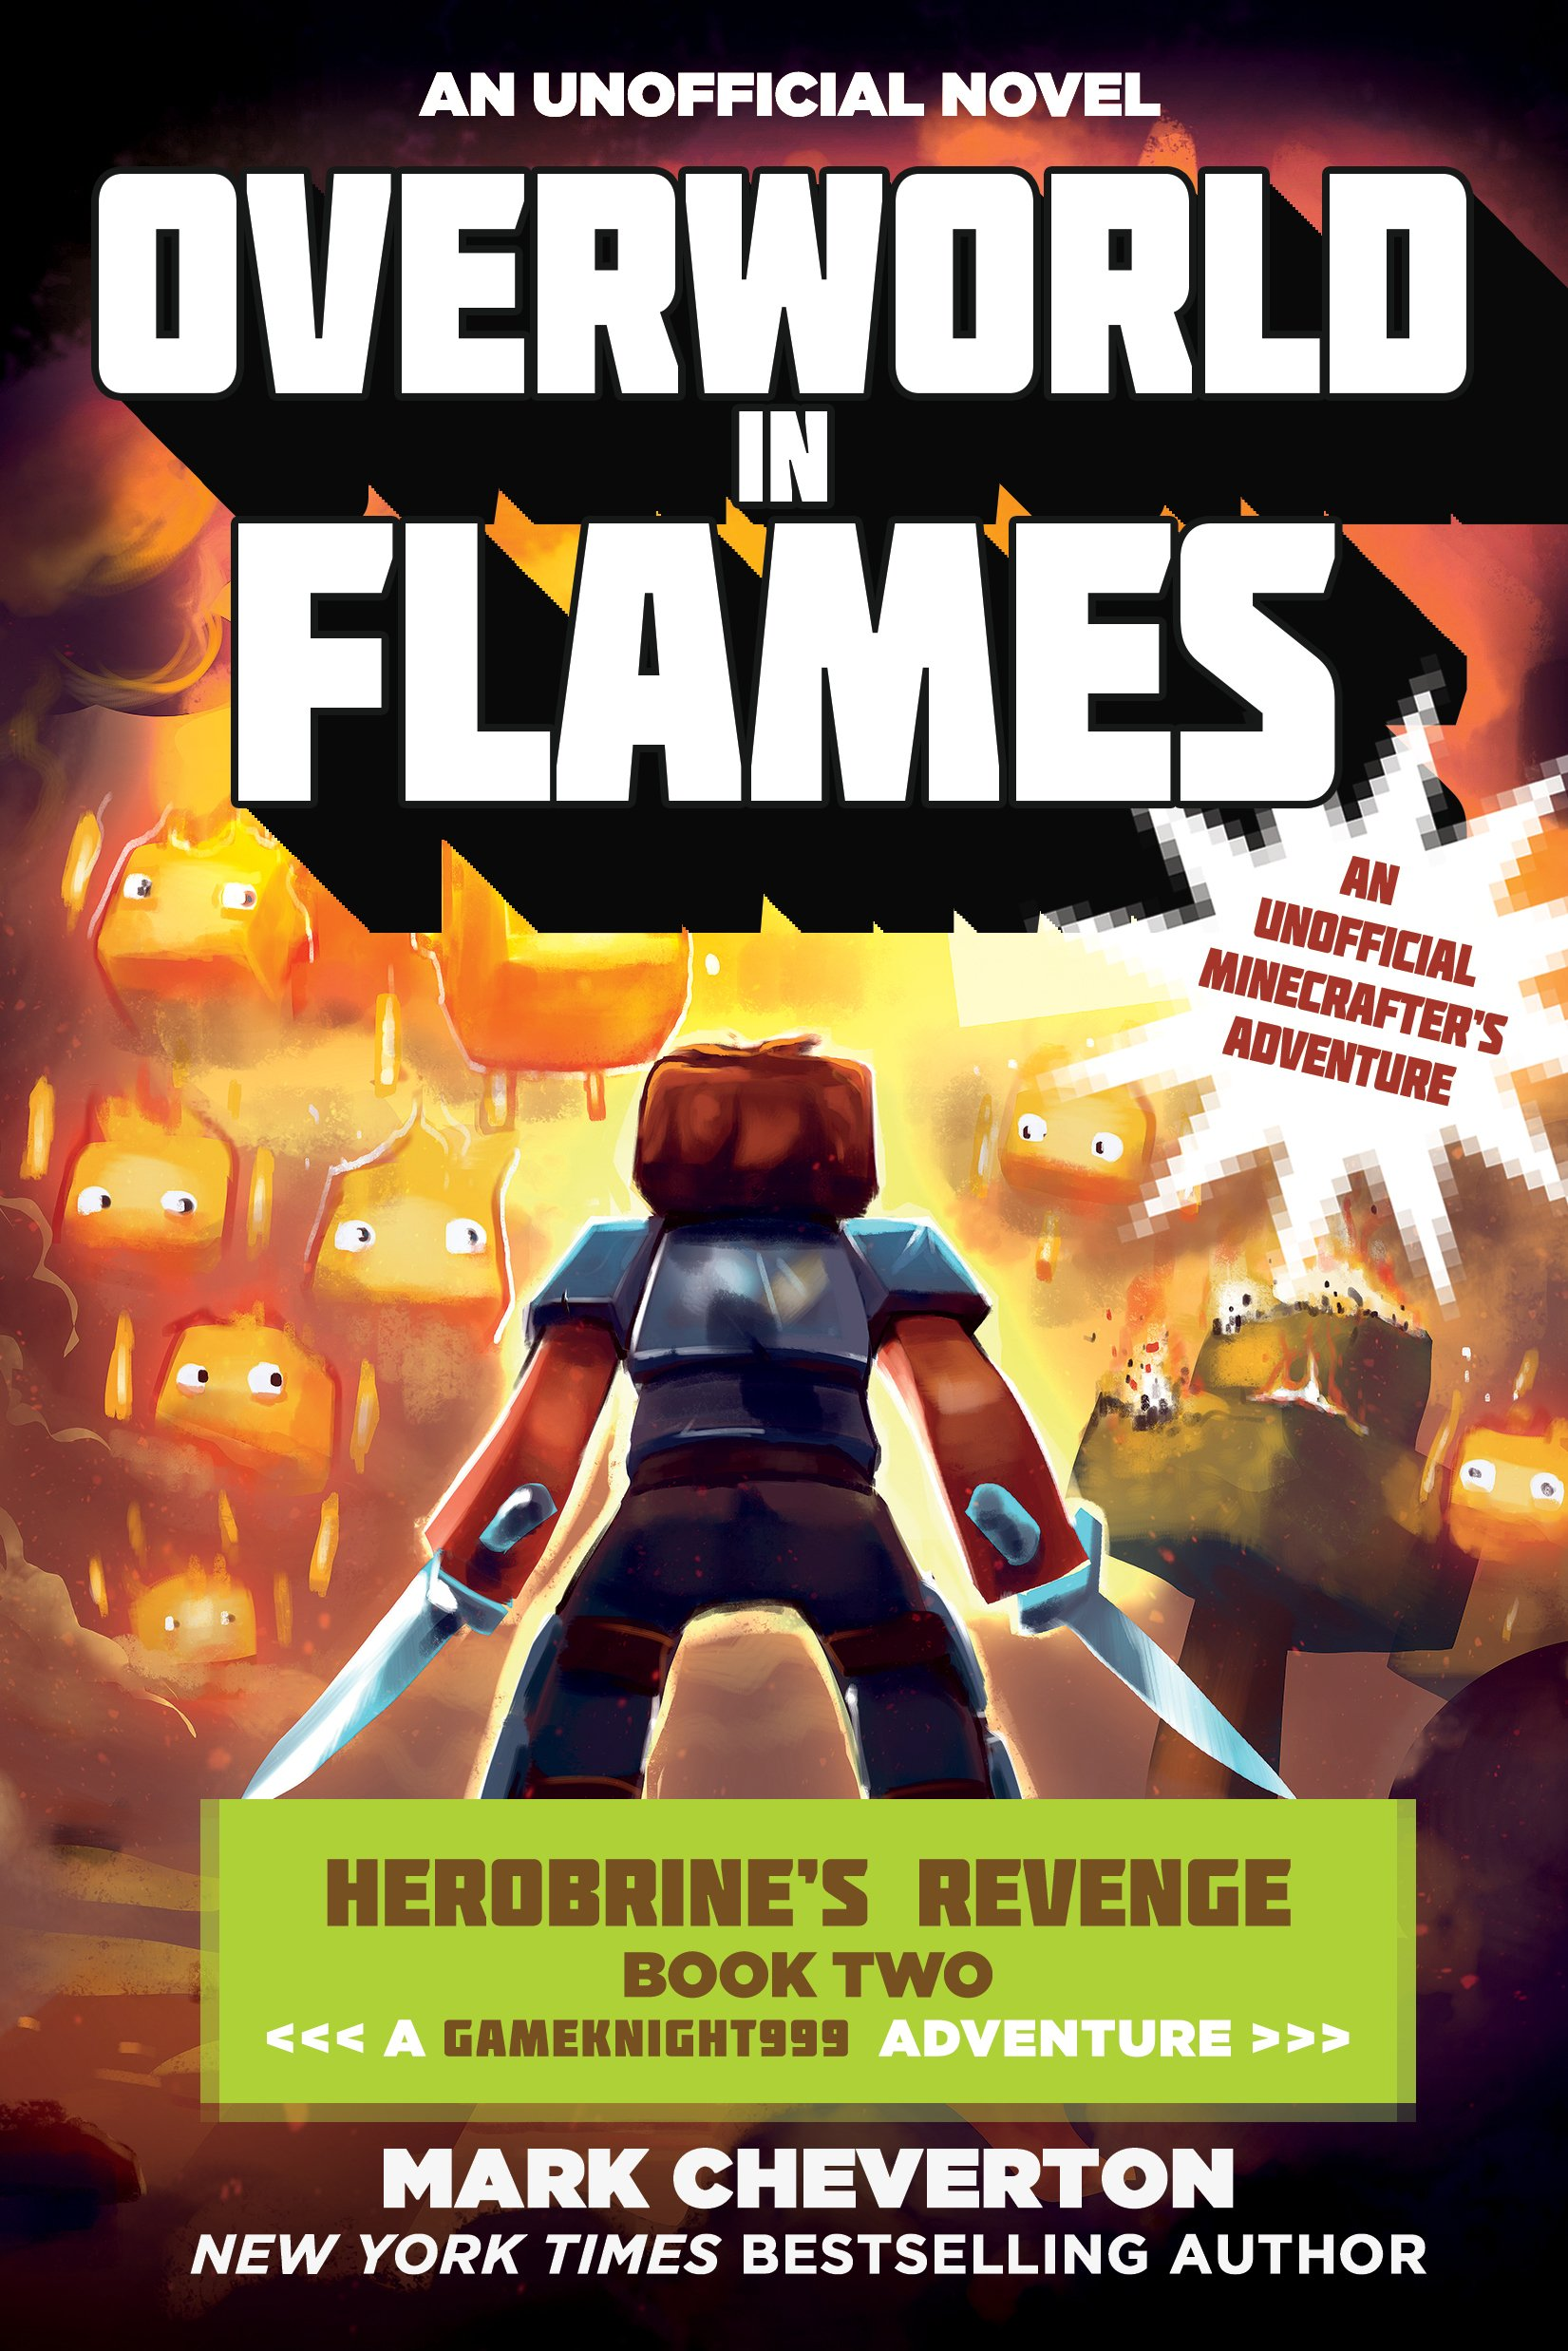 Overworld Flames Herobrine s Gameknight999 Minecrafter s product image